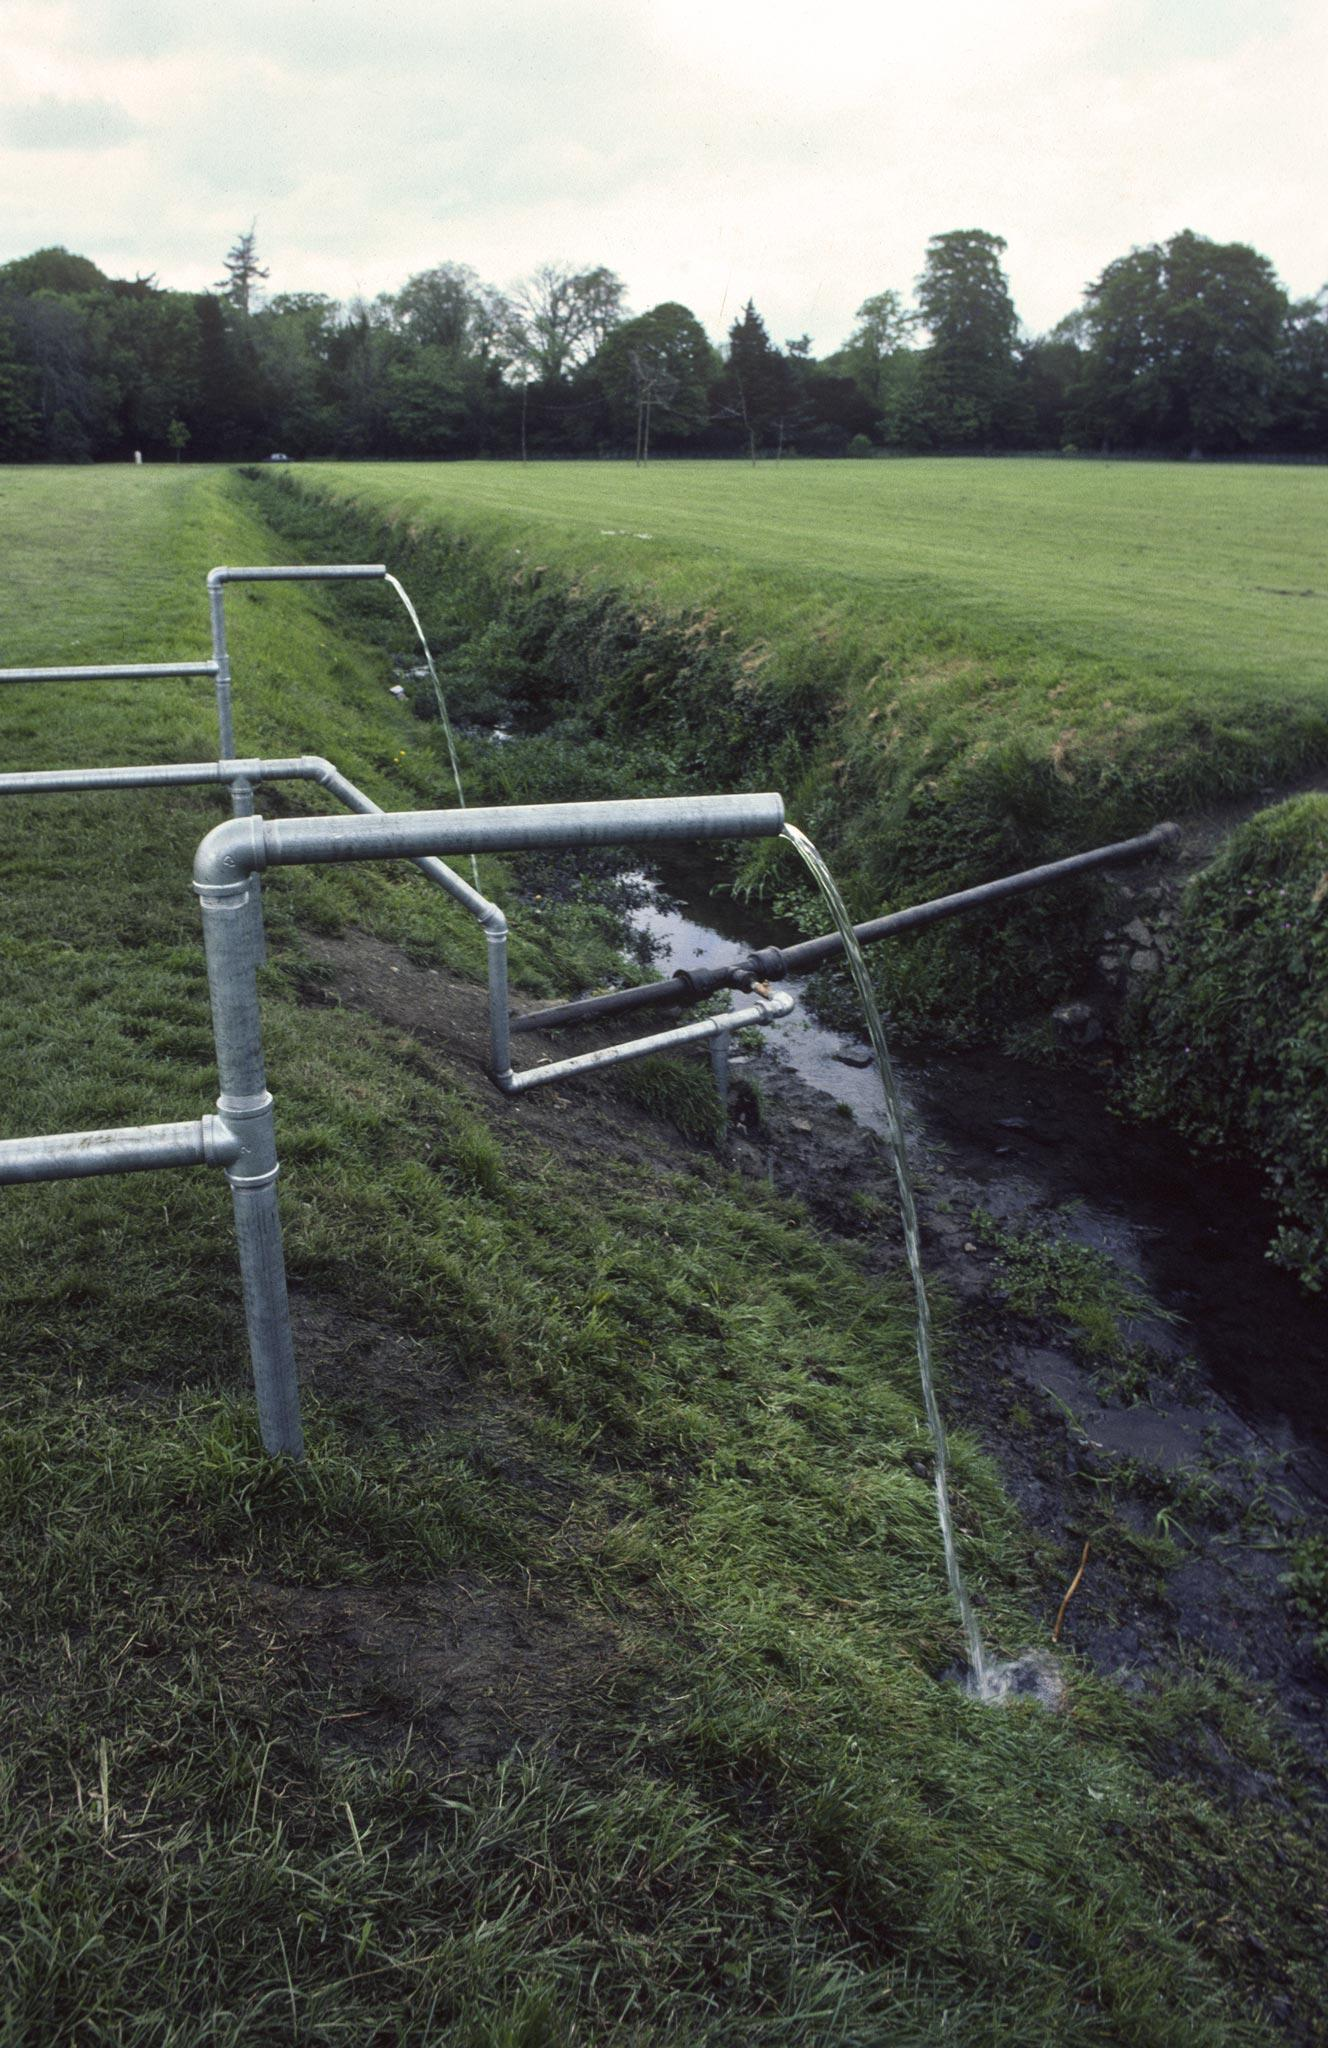 Water flowing from two galvanized pipes and dropping down into a muddy ditch